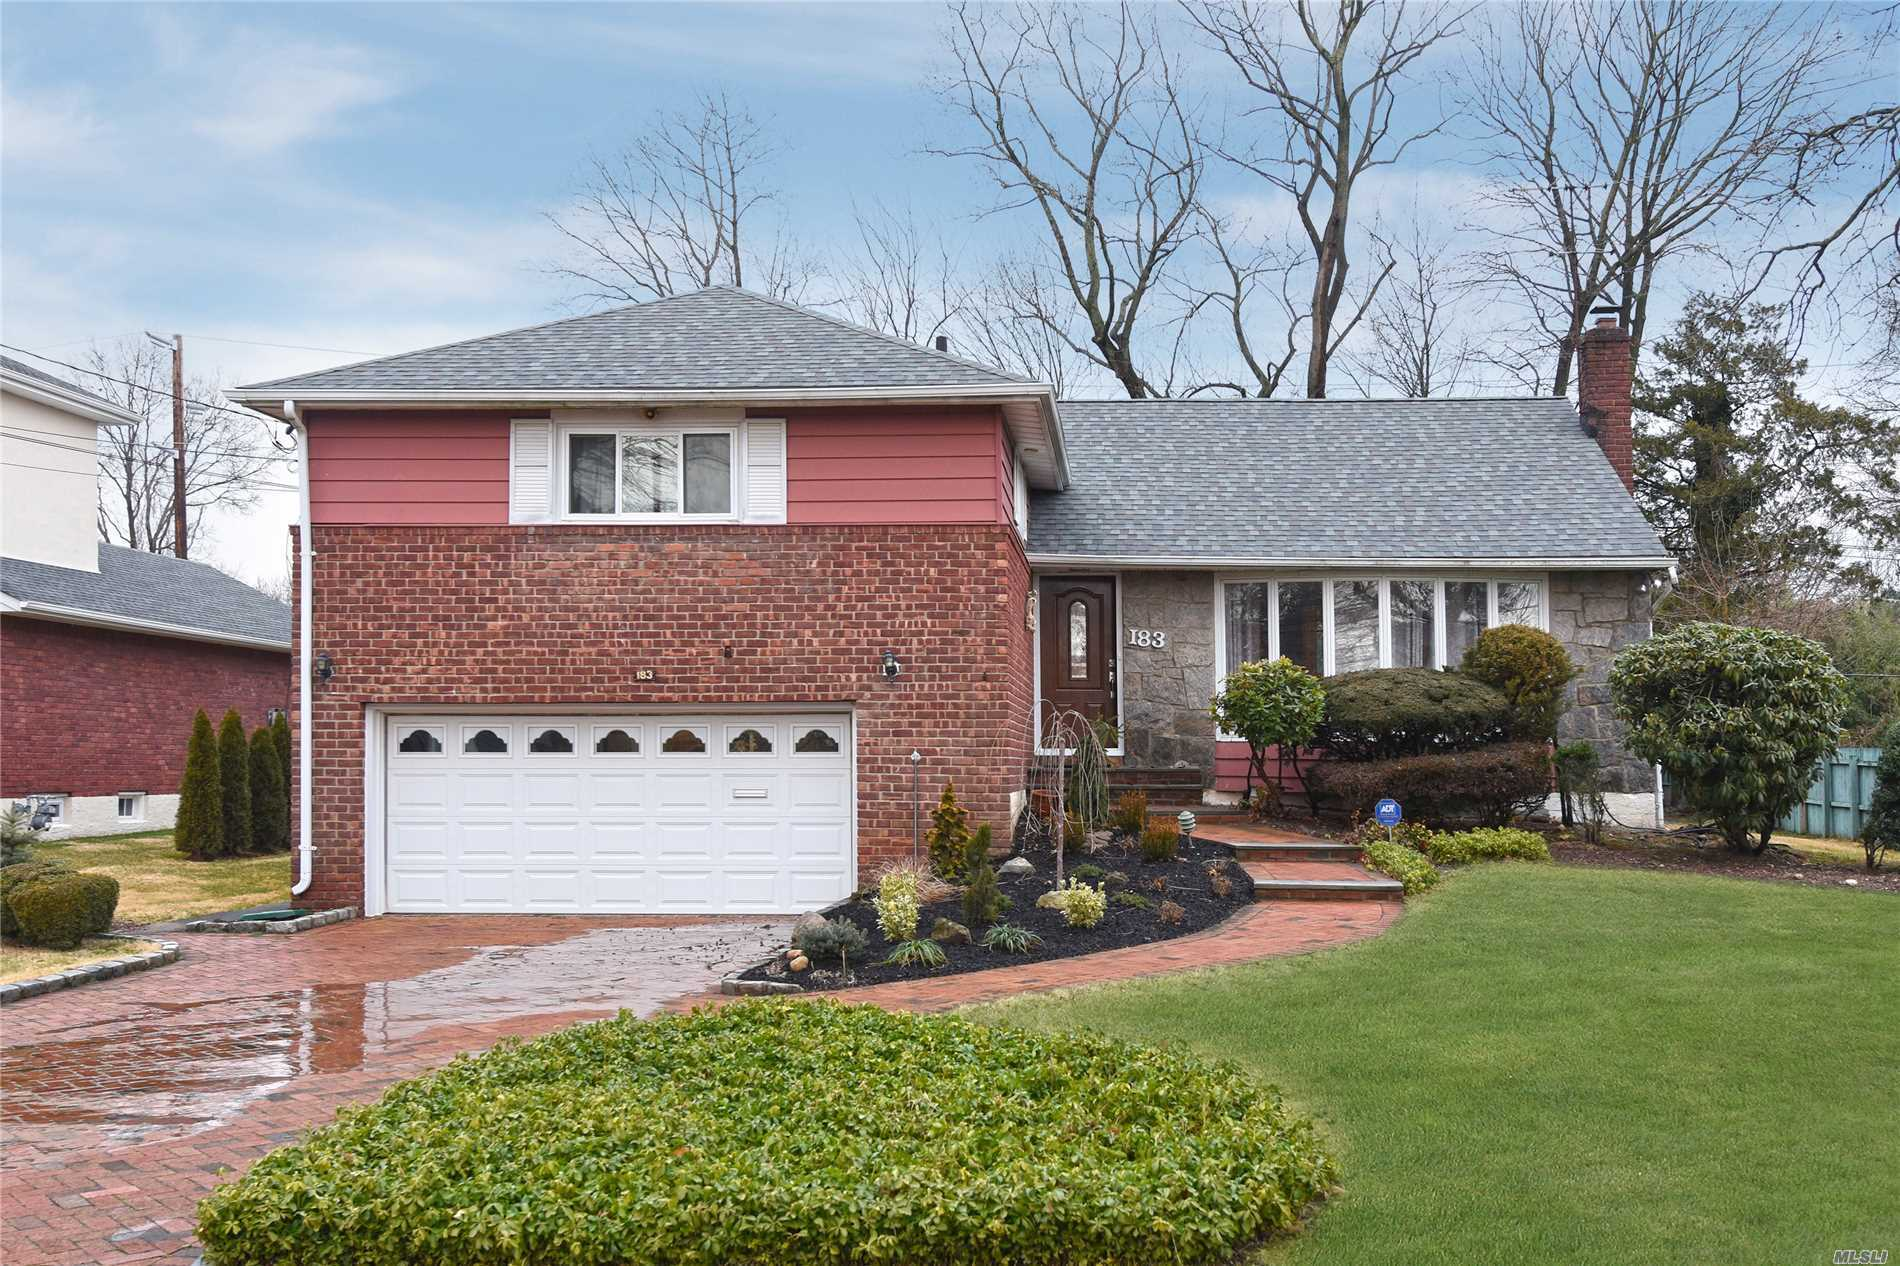 Herricks School! Manhasset Hills! Super Mint Split Level Home In Prime Manhasset Hills. Totally Renovated In 2011. New Kitchen, New Bathrooms, New Windows, New Roof, New Gas Boiler, New Sprinklers, Central Vacuum And More! Turn-Key Property!